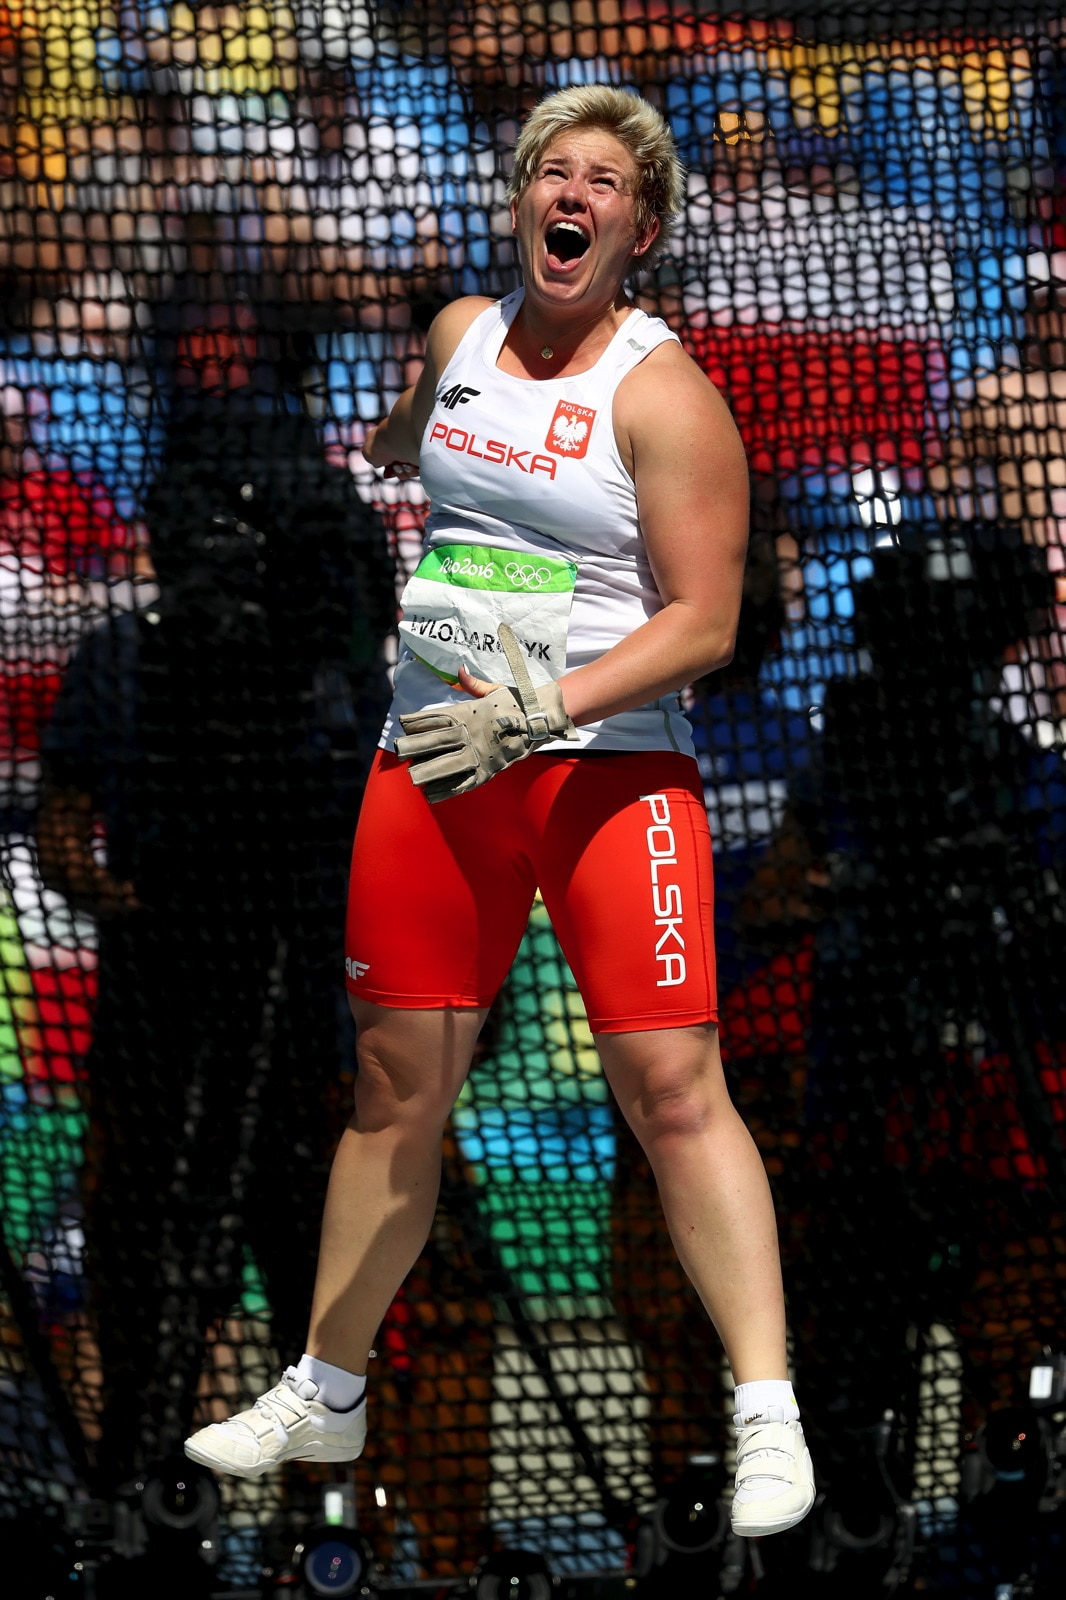 62 best Hammer Throw images on Pinterest Hammer throw, Track 2008 olympic hammer throw photo gallery